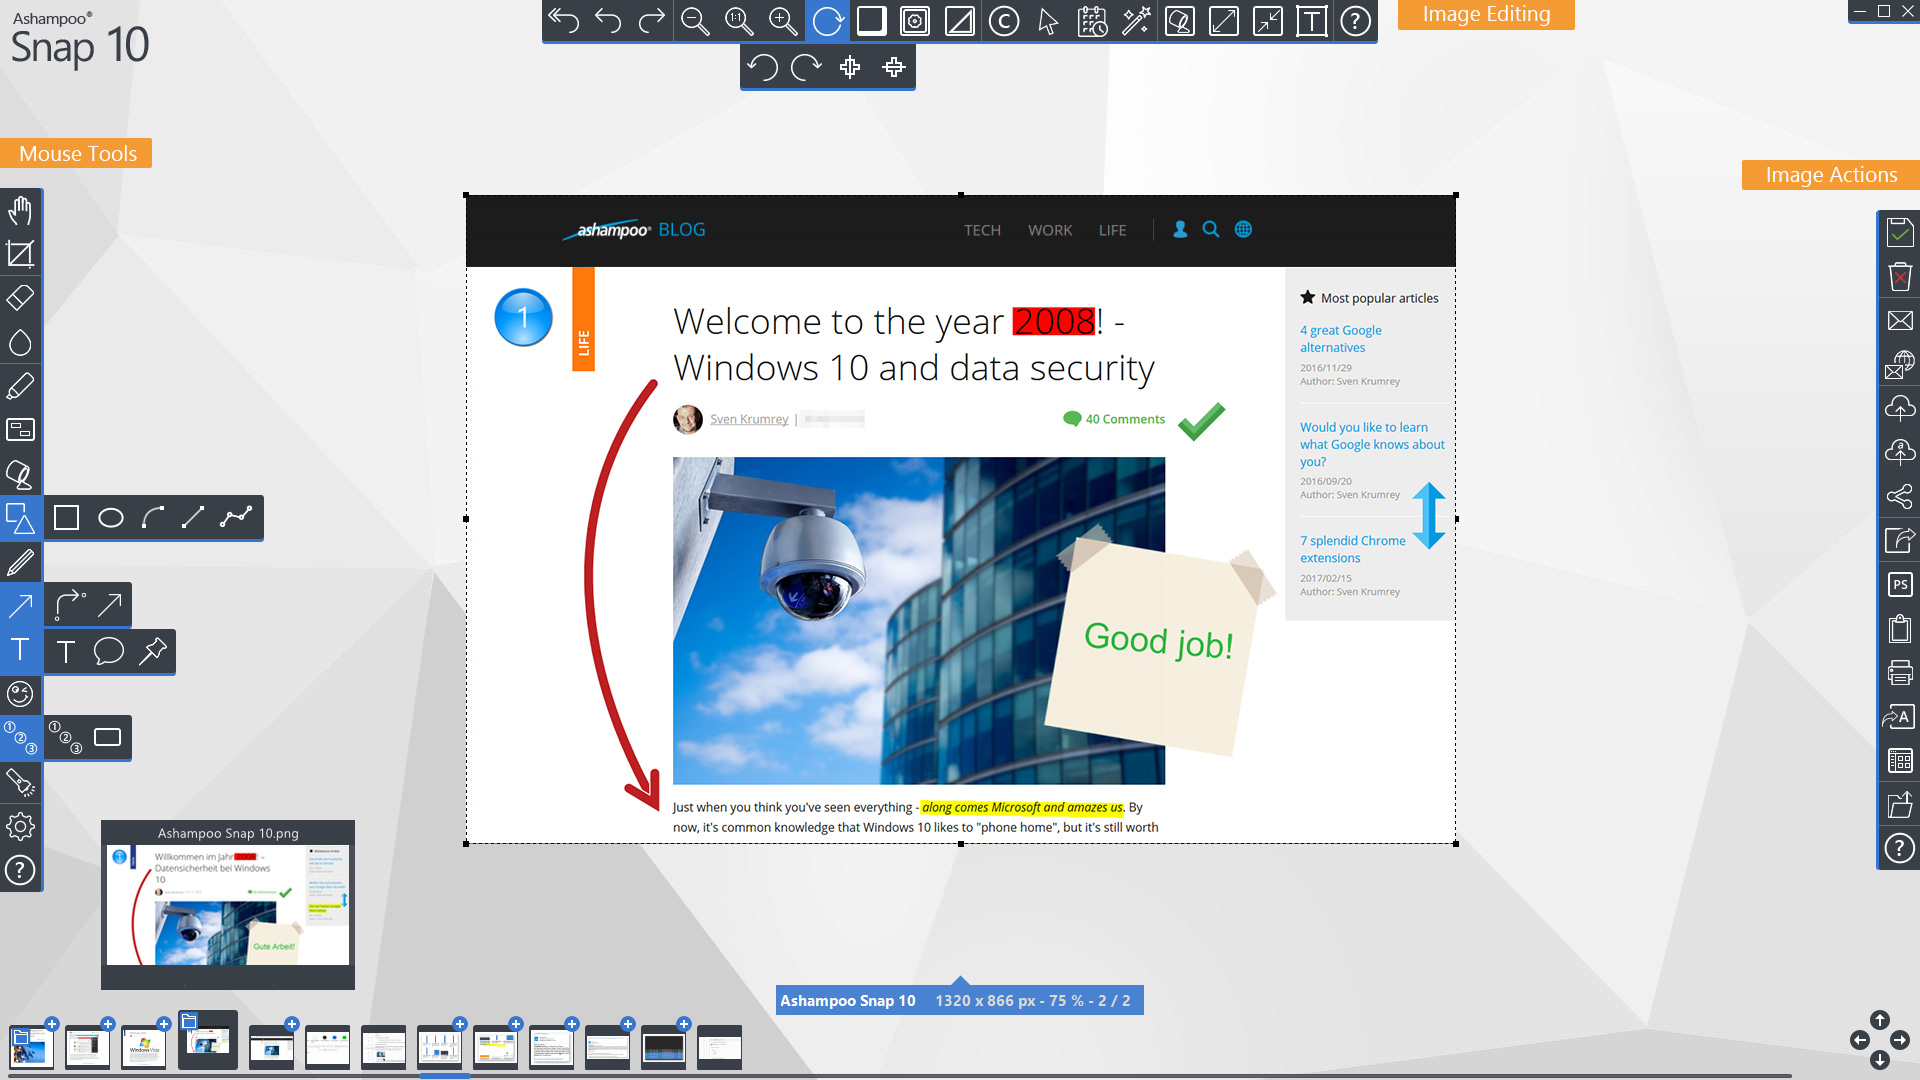 Ashampoo Snap 10.0.7 Crack With Serial Number [FREE]